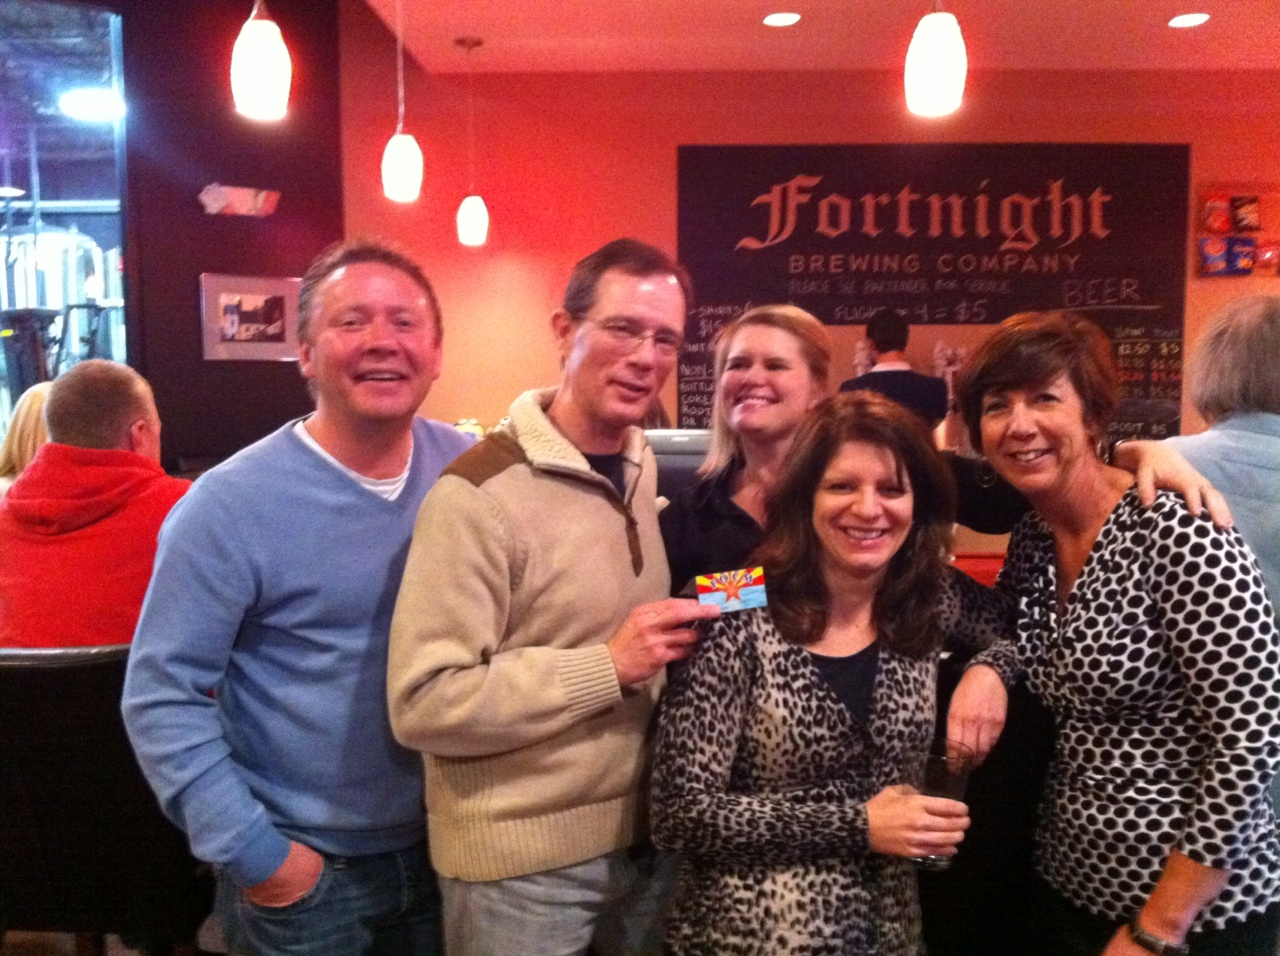 FOCM at Fortnight Brewing Company